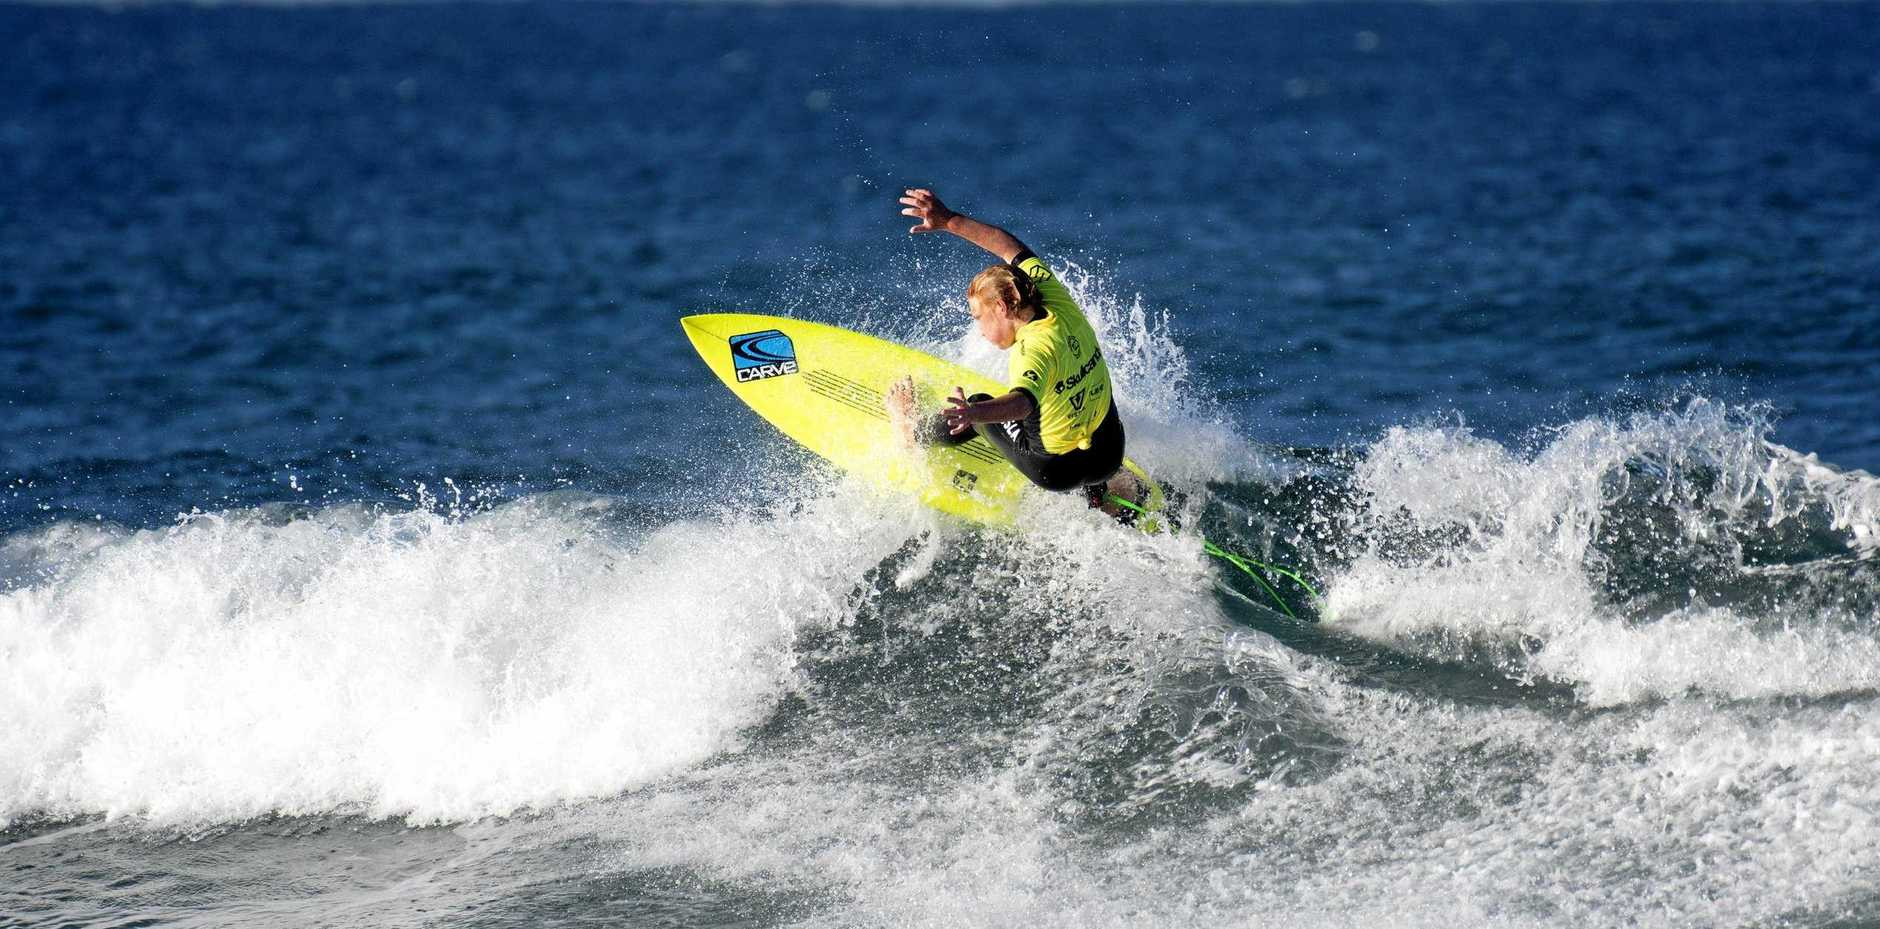 Lennox Head surfer Harry O'Brien competing at the Skullcandy Oz Grom Open.